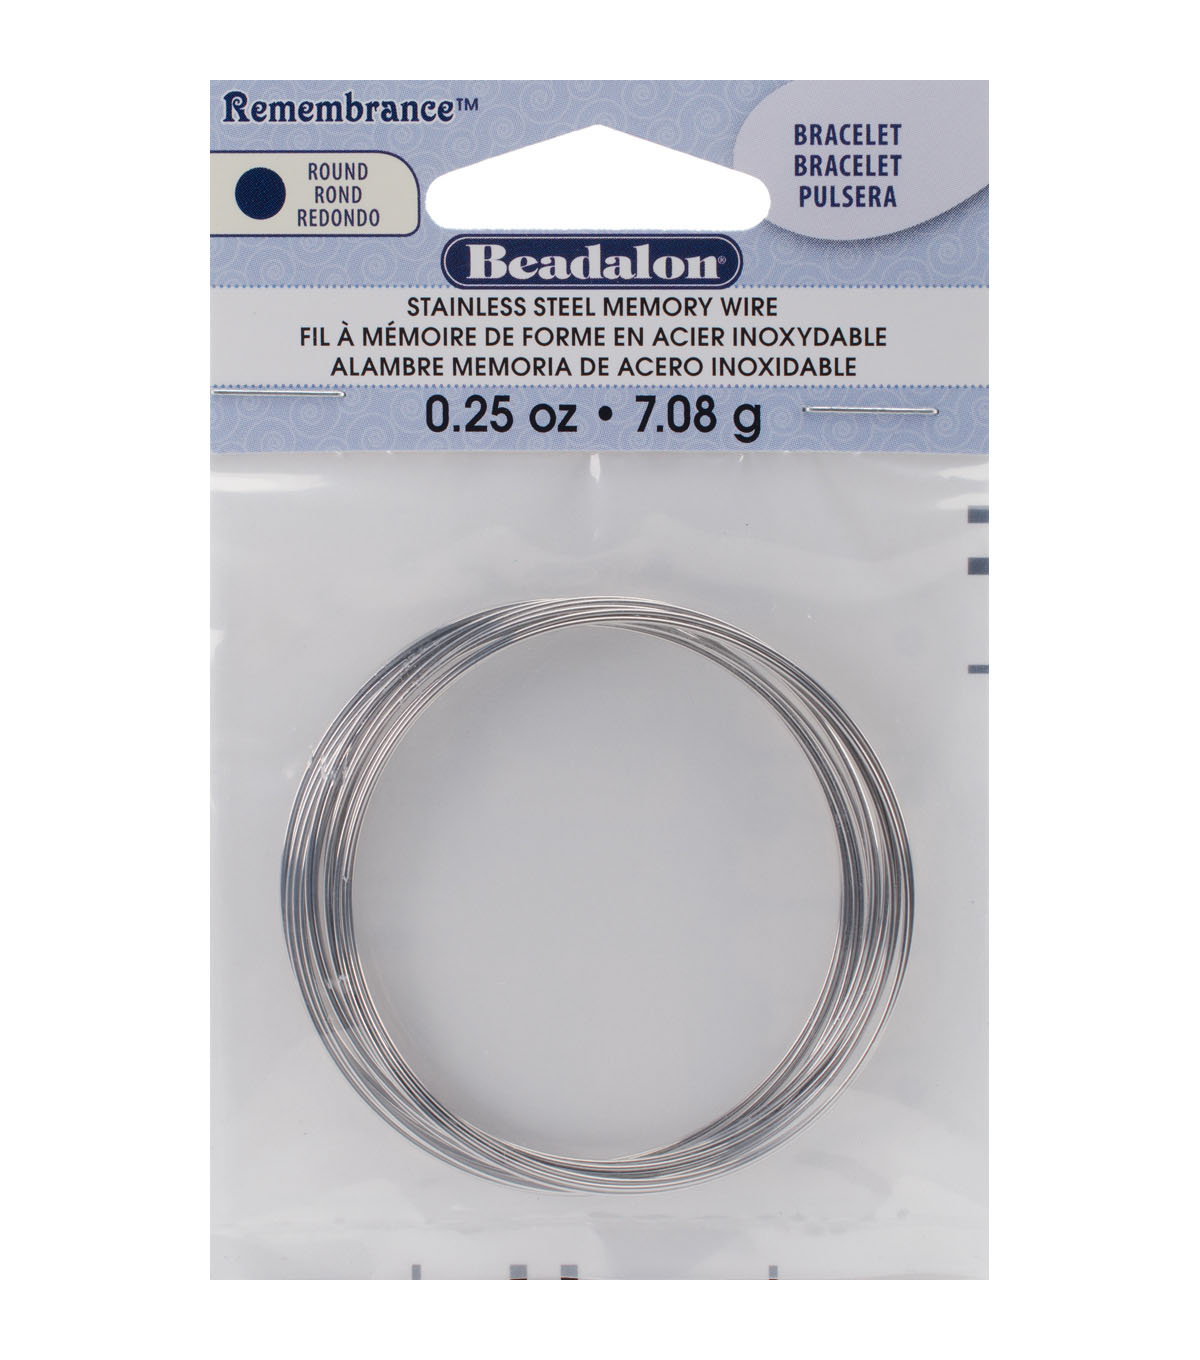 Beadalon Remembrance Memory Wire Bracelet Coil - Stainless Steel | JOANN